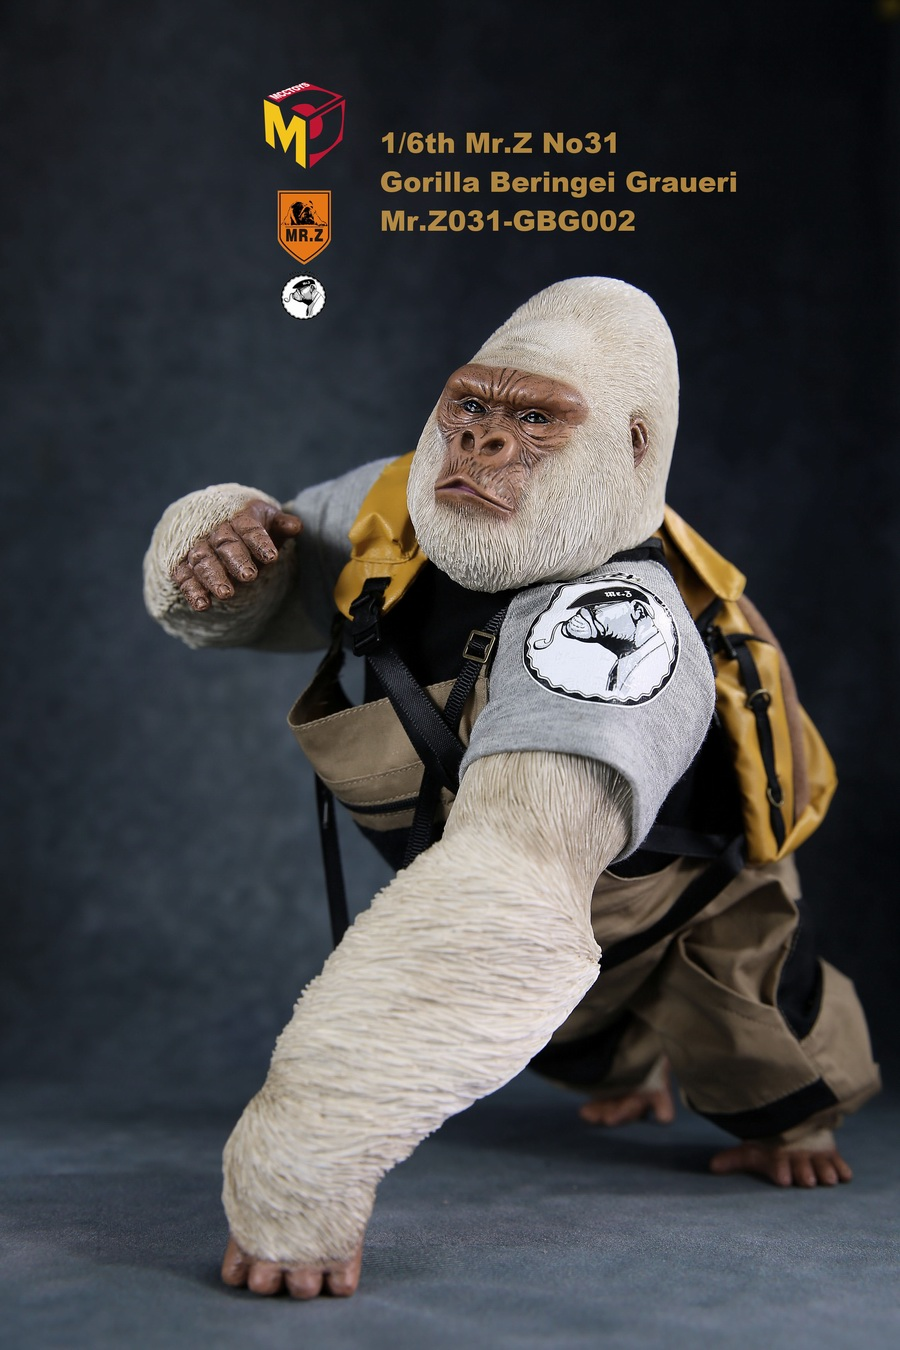 NEW PRODUCT: Mr.Z new product: 1/6 simulation animal model 31st bomb - African lowland gorilla (all 2 heads can be changed to upper limbs) 10110611